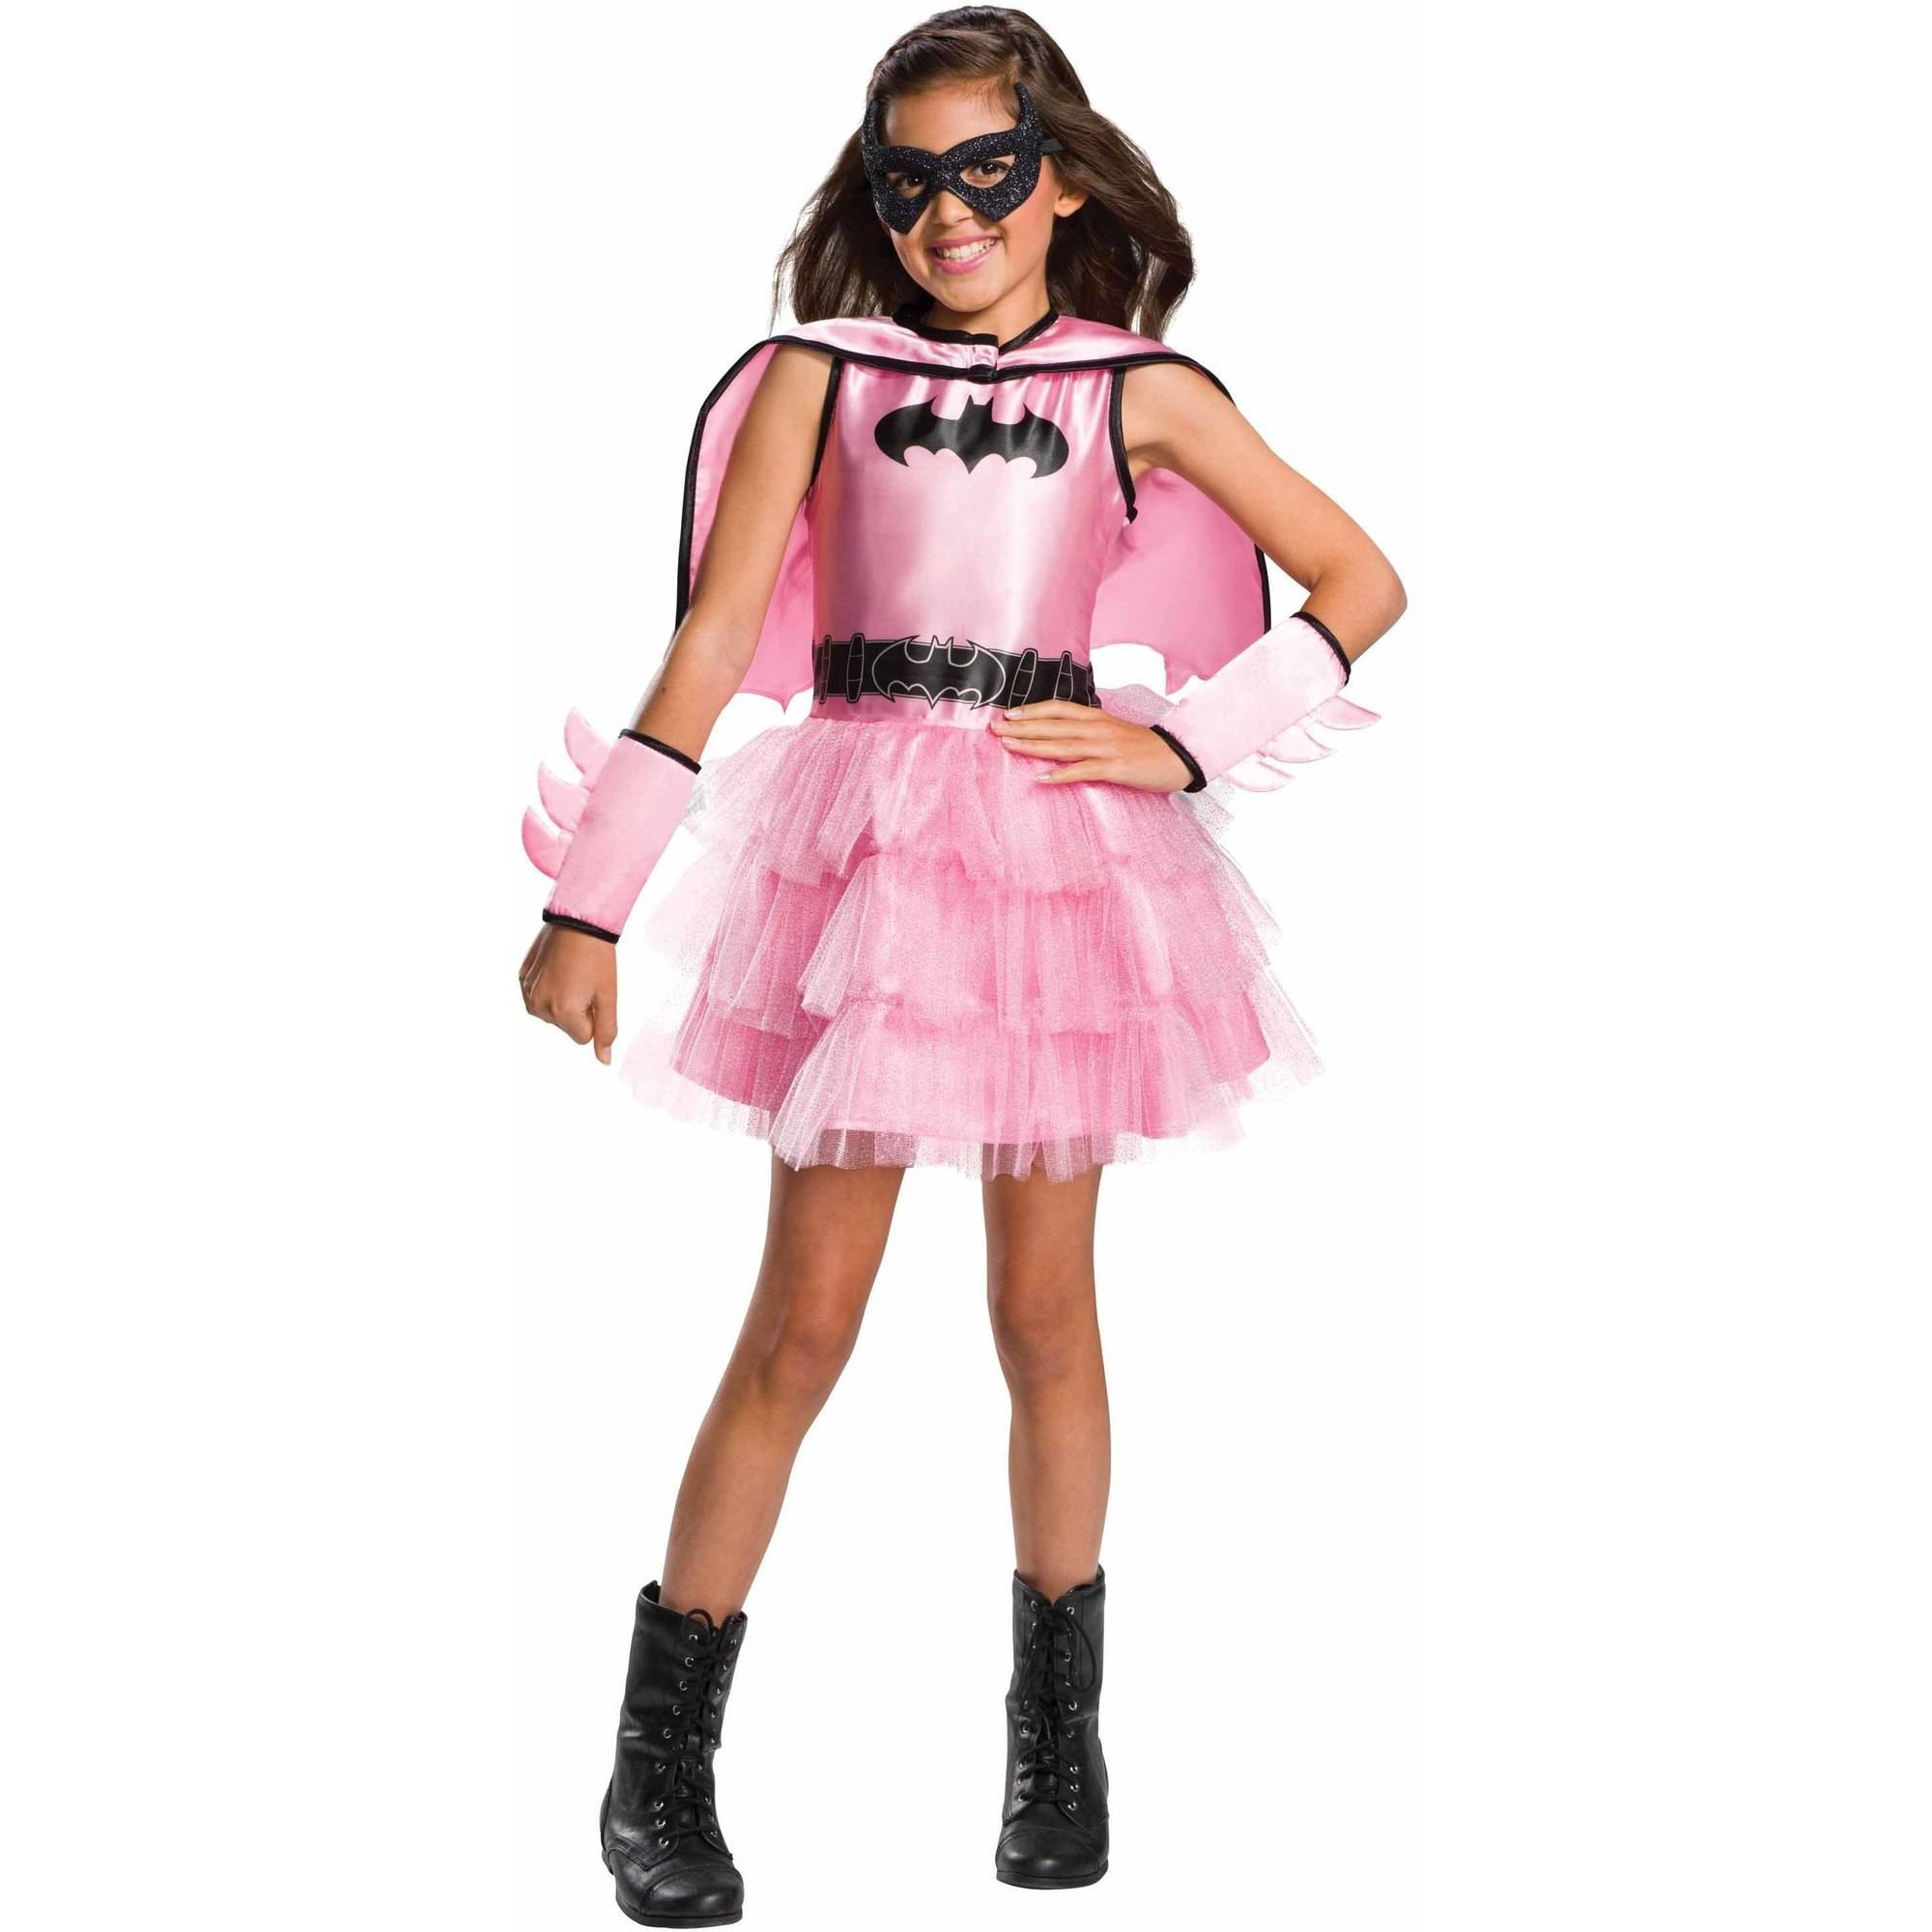 Pink Batgirl Child's Costume, Small (4-6)